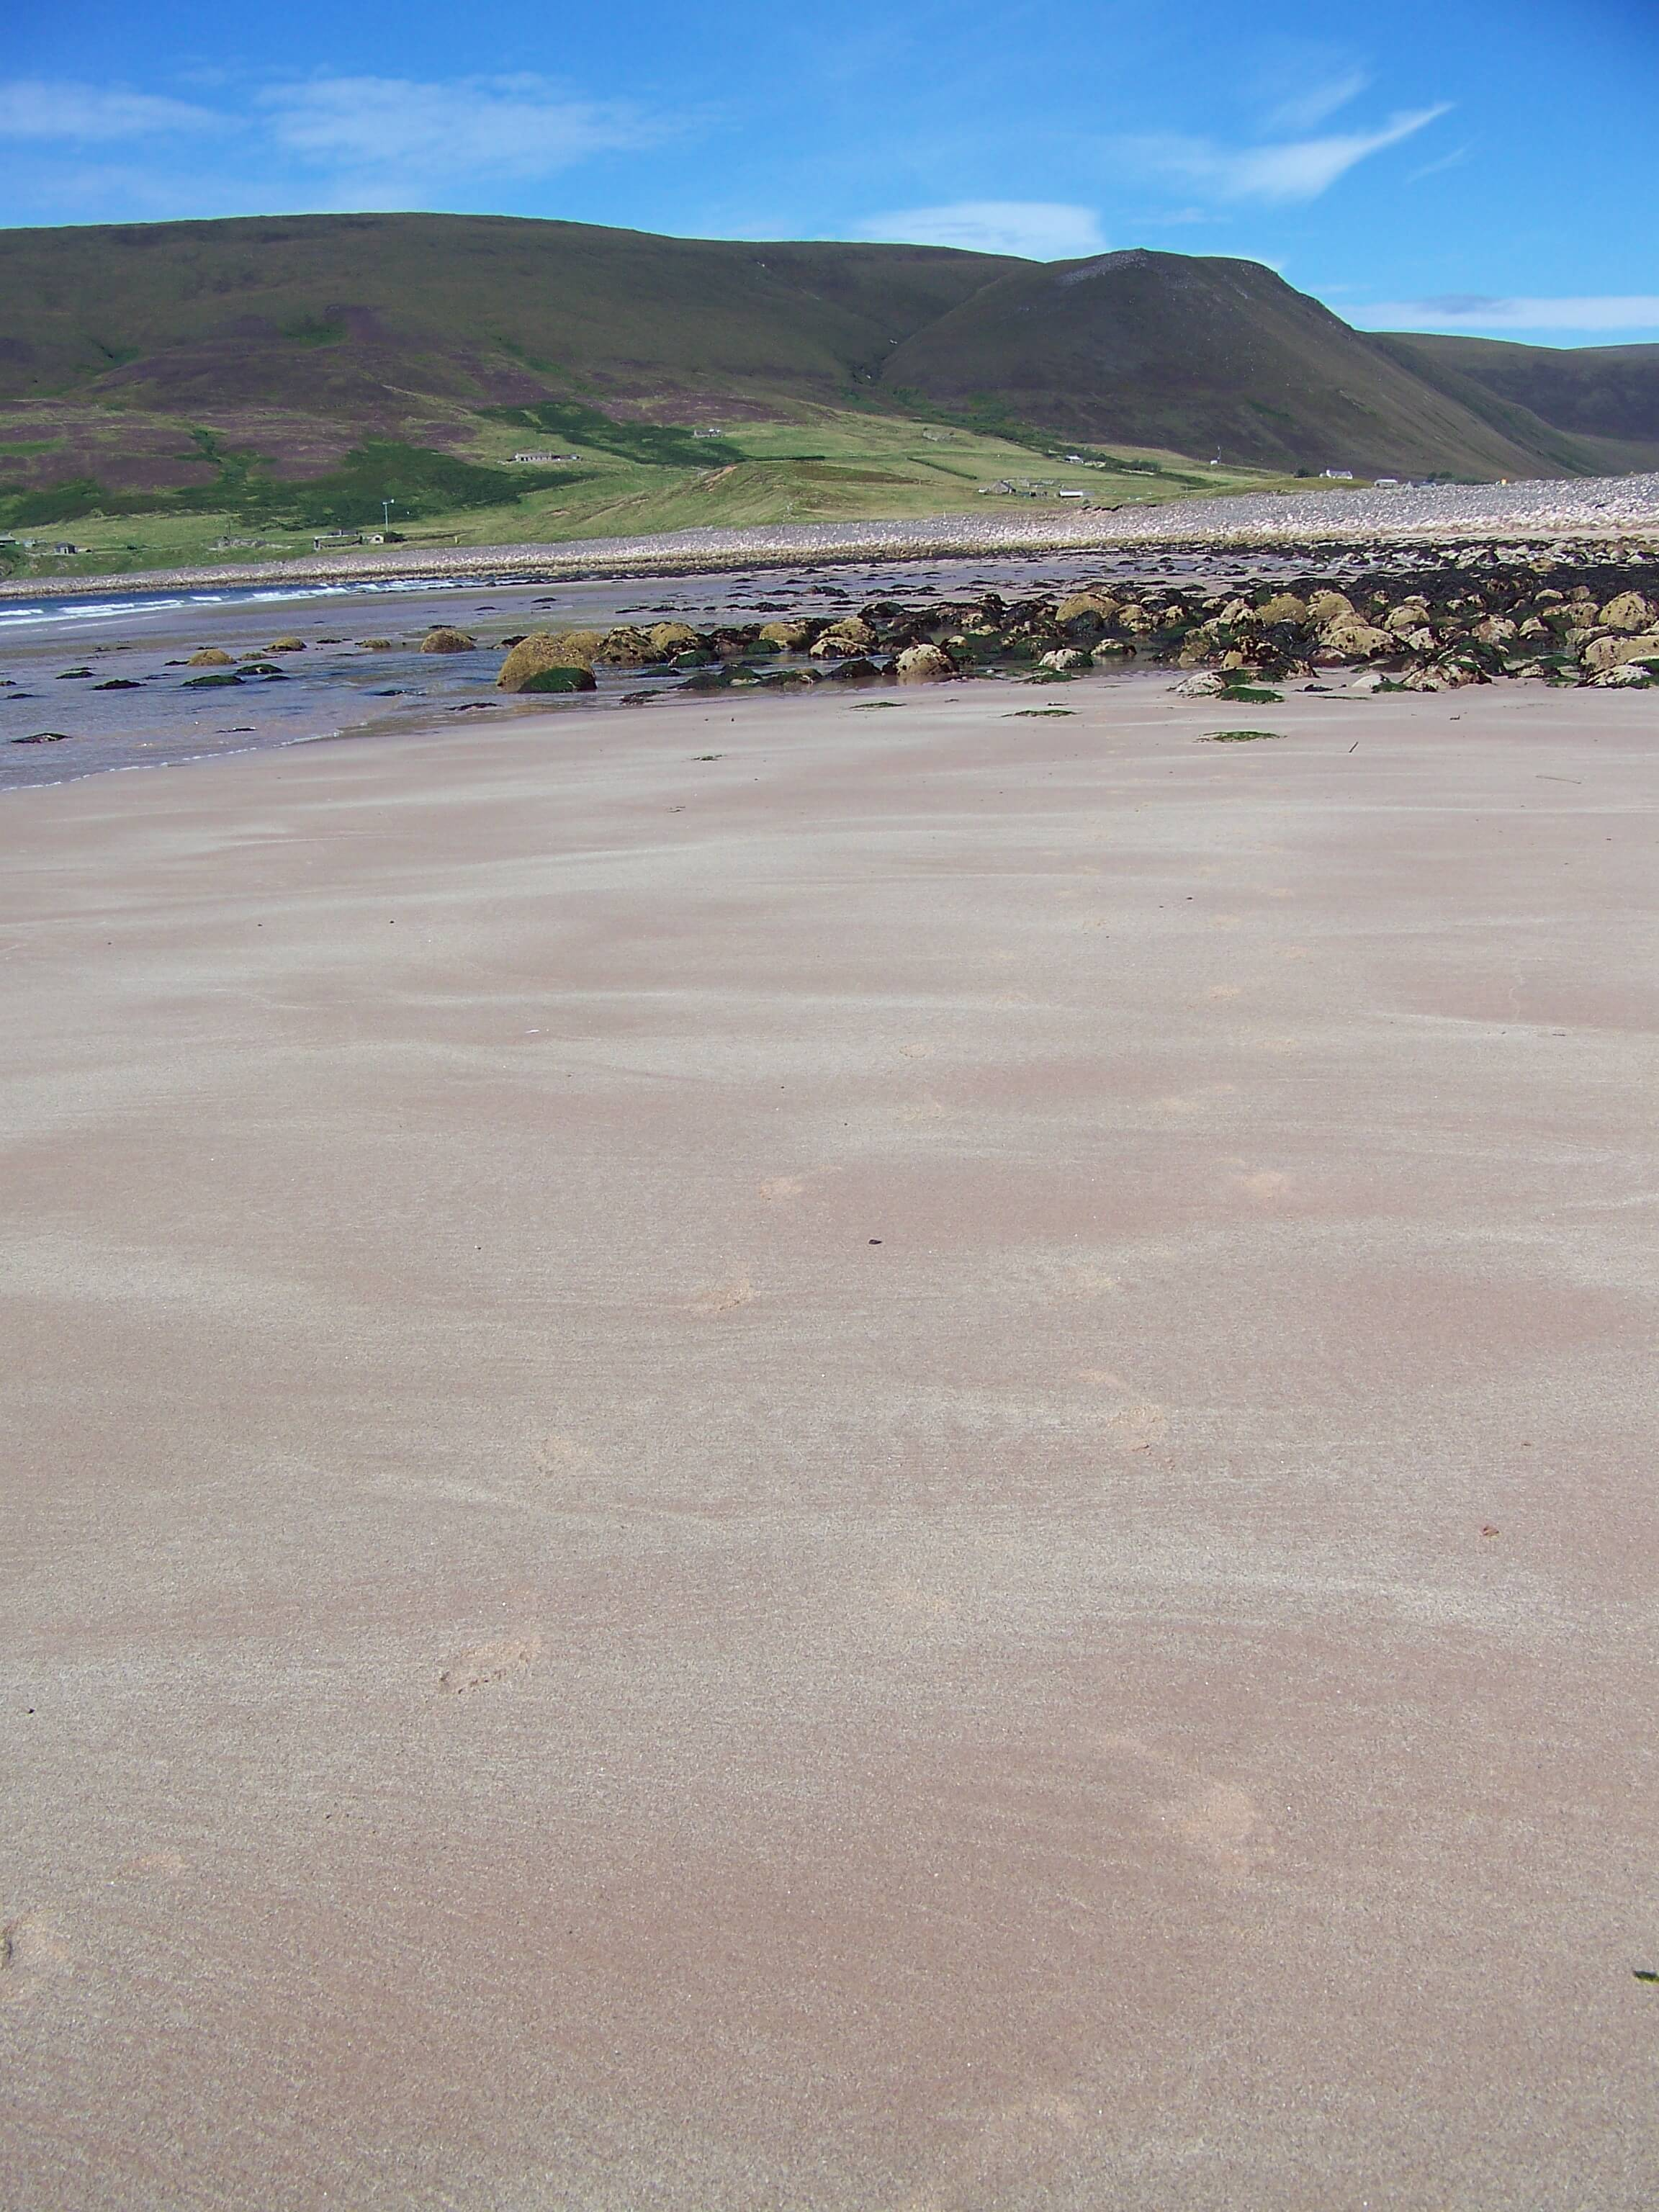 Pink sands of Rackwick Beach, Hoy, Orkney